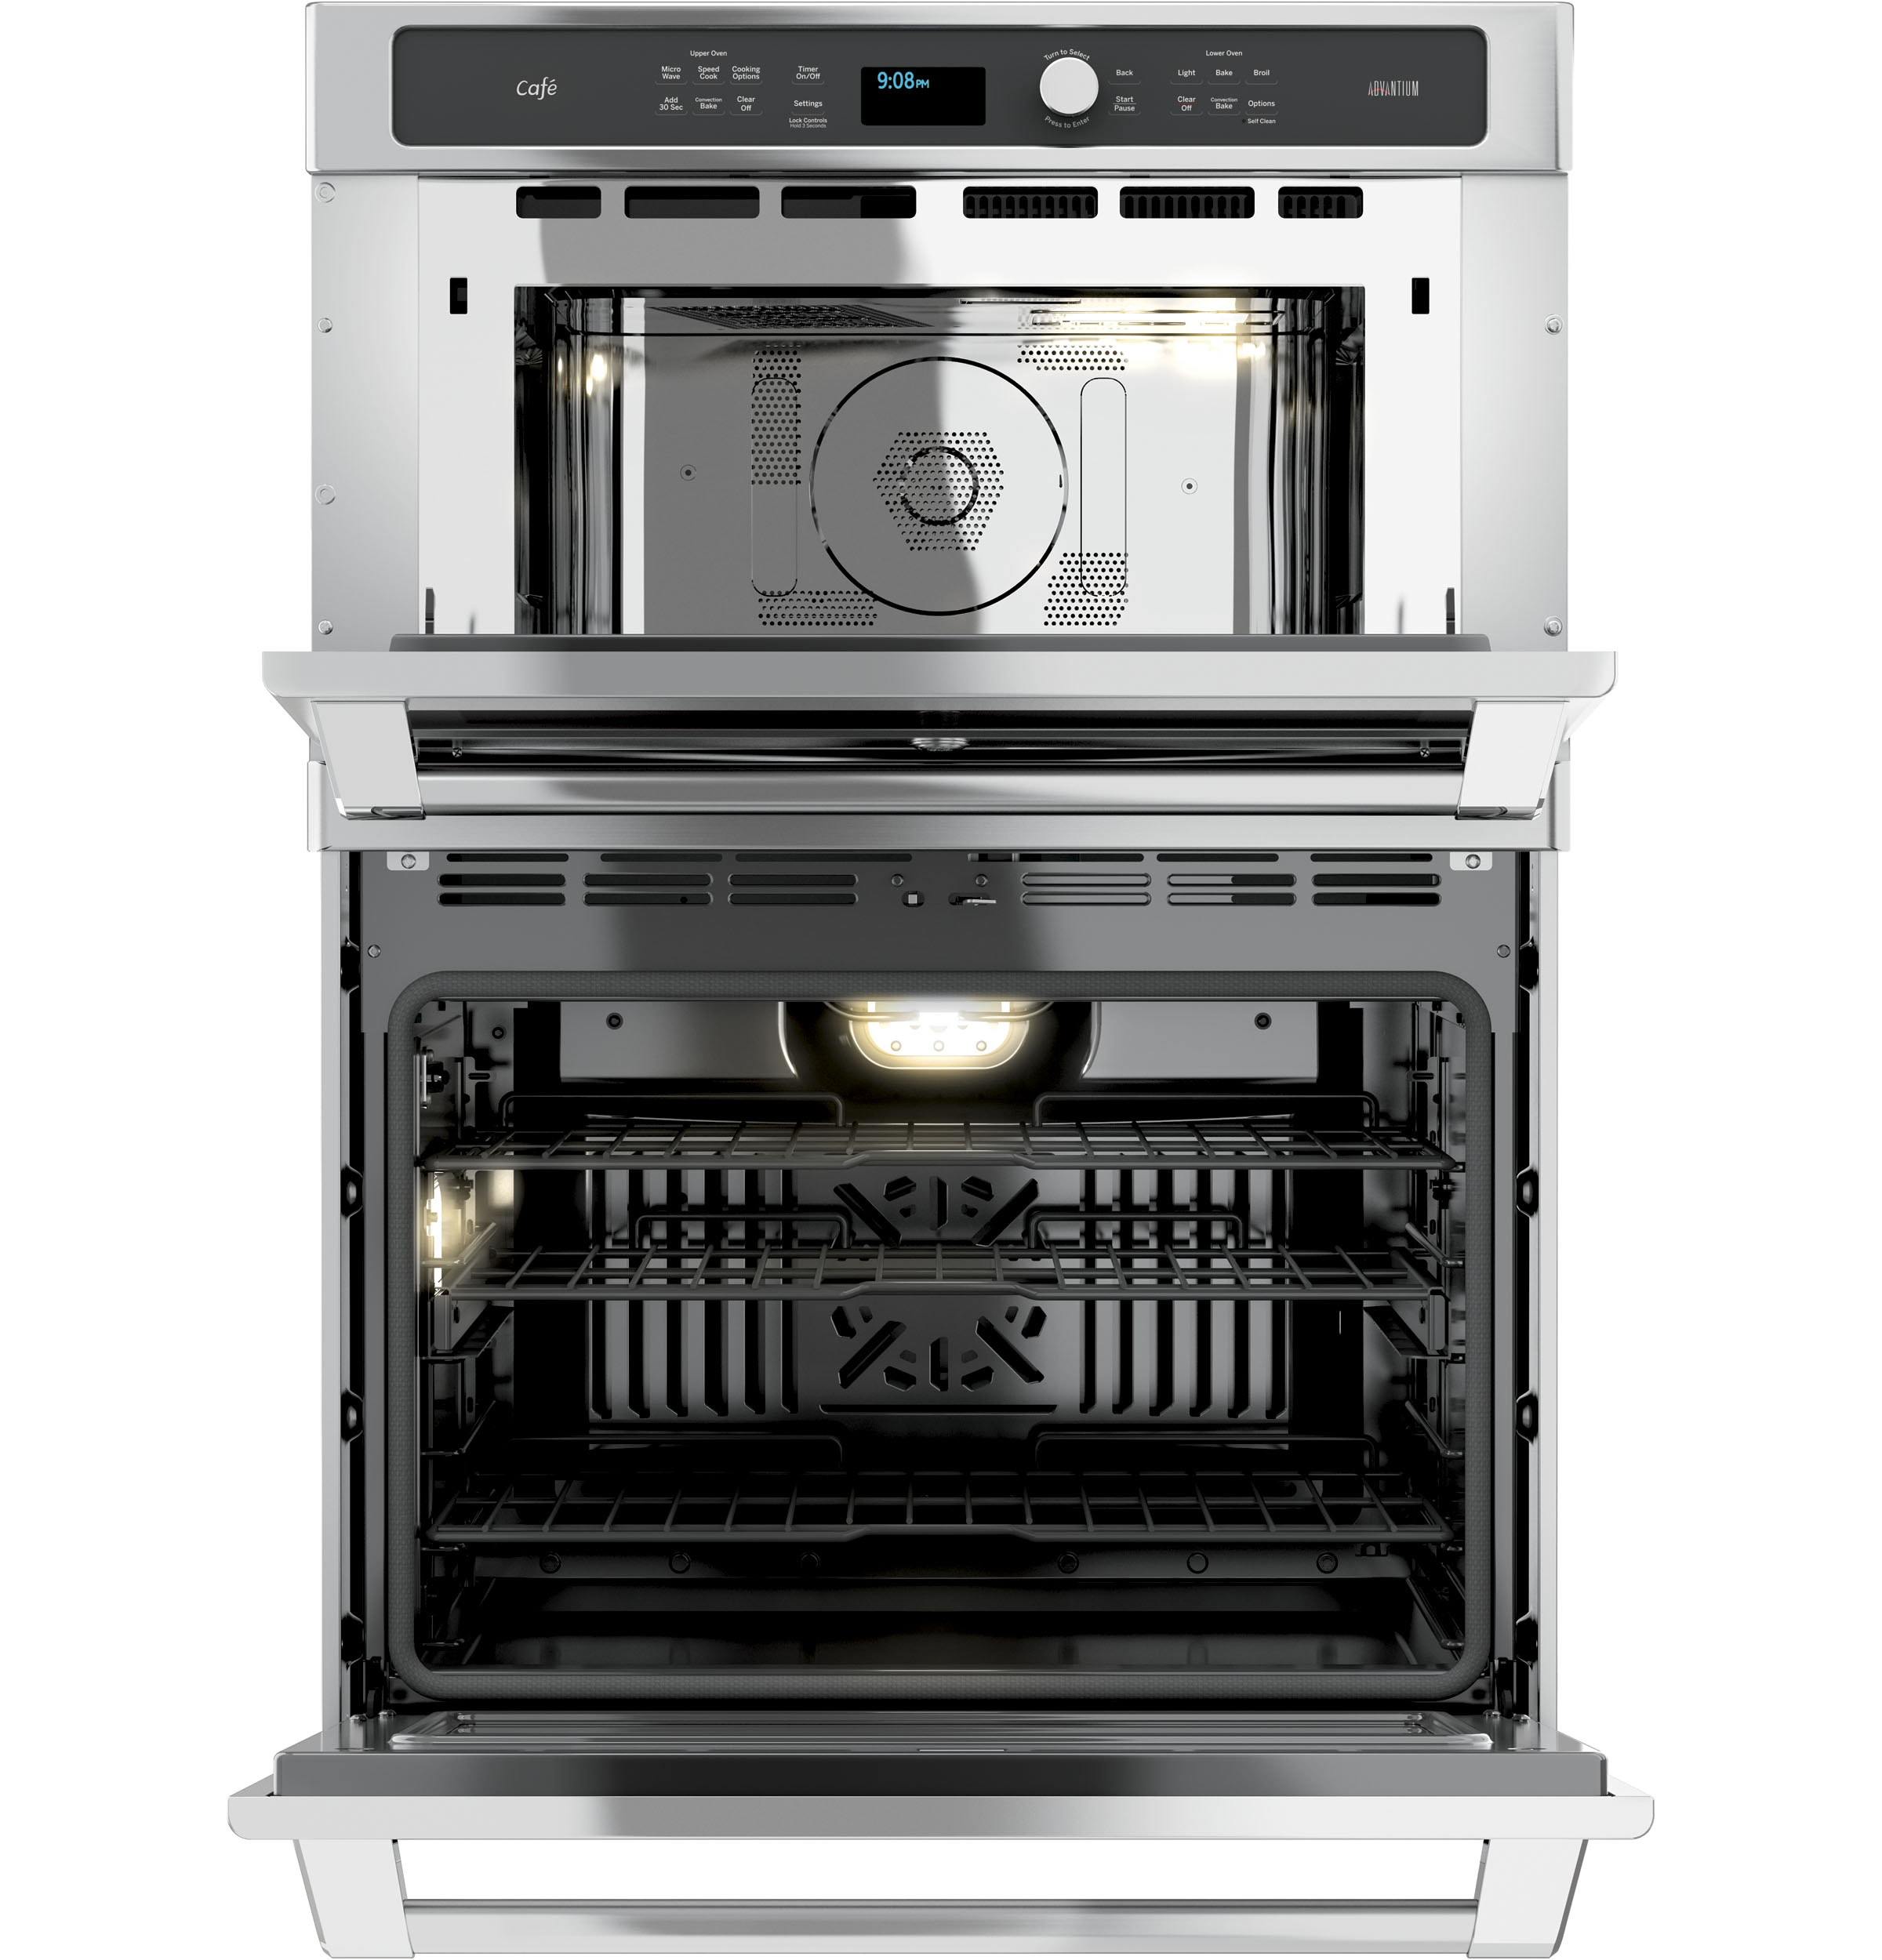 Model: CT9800SHSS | GE Cafe GE Café™ Series 30 in. Combination Double Wall Oven with Convection and Advantium® Technology